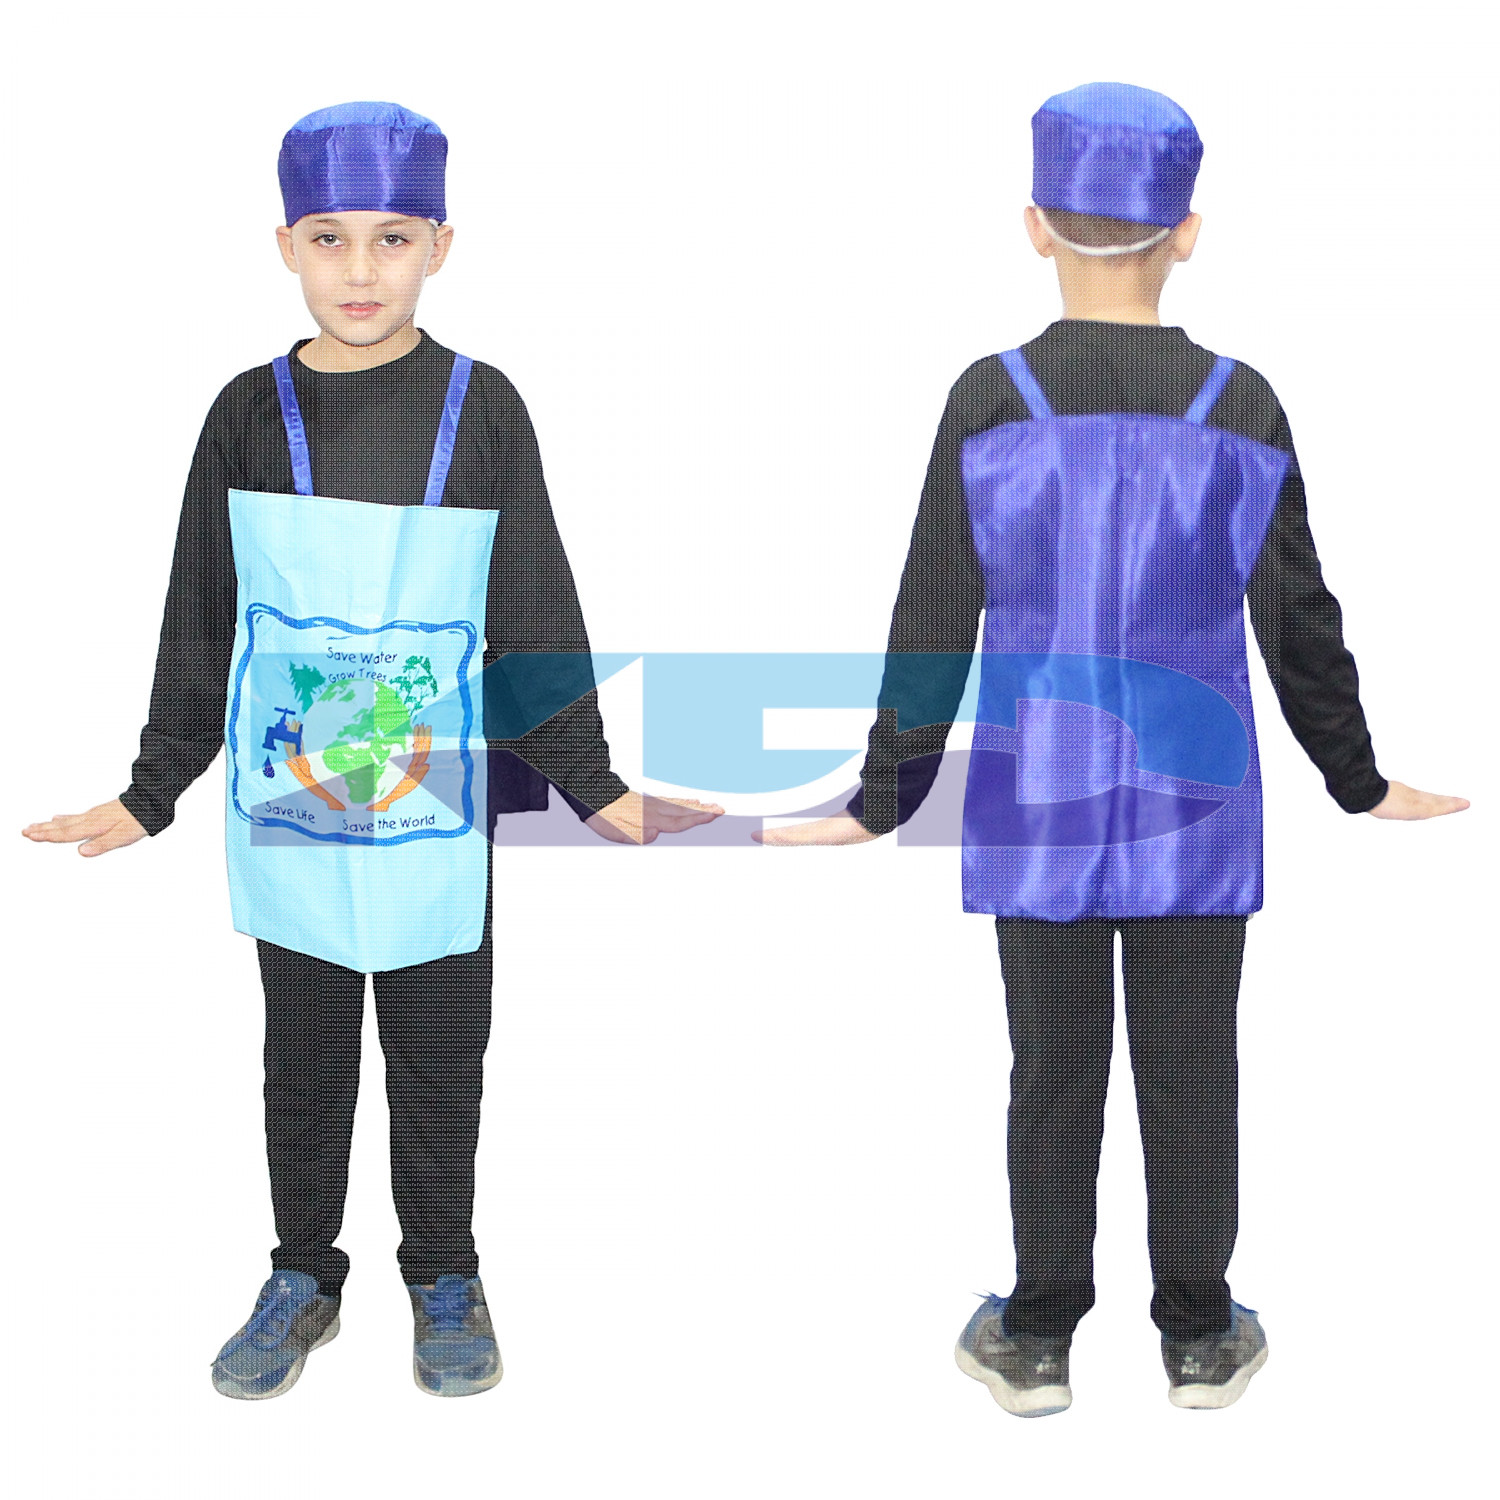 Save The Water Fancy Dress For Kids/Nature Costume For Kids/Water Fancy Dress/For Kids Annual function/Theme Party/Competition/Stage Shows/Birthday Party Dress